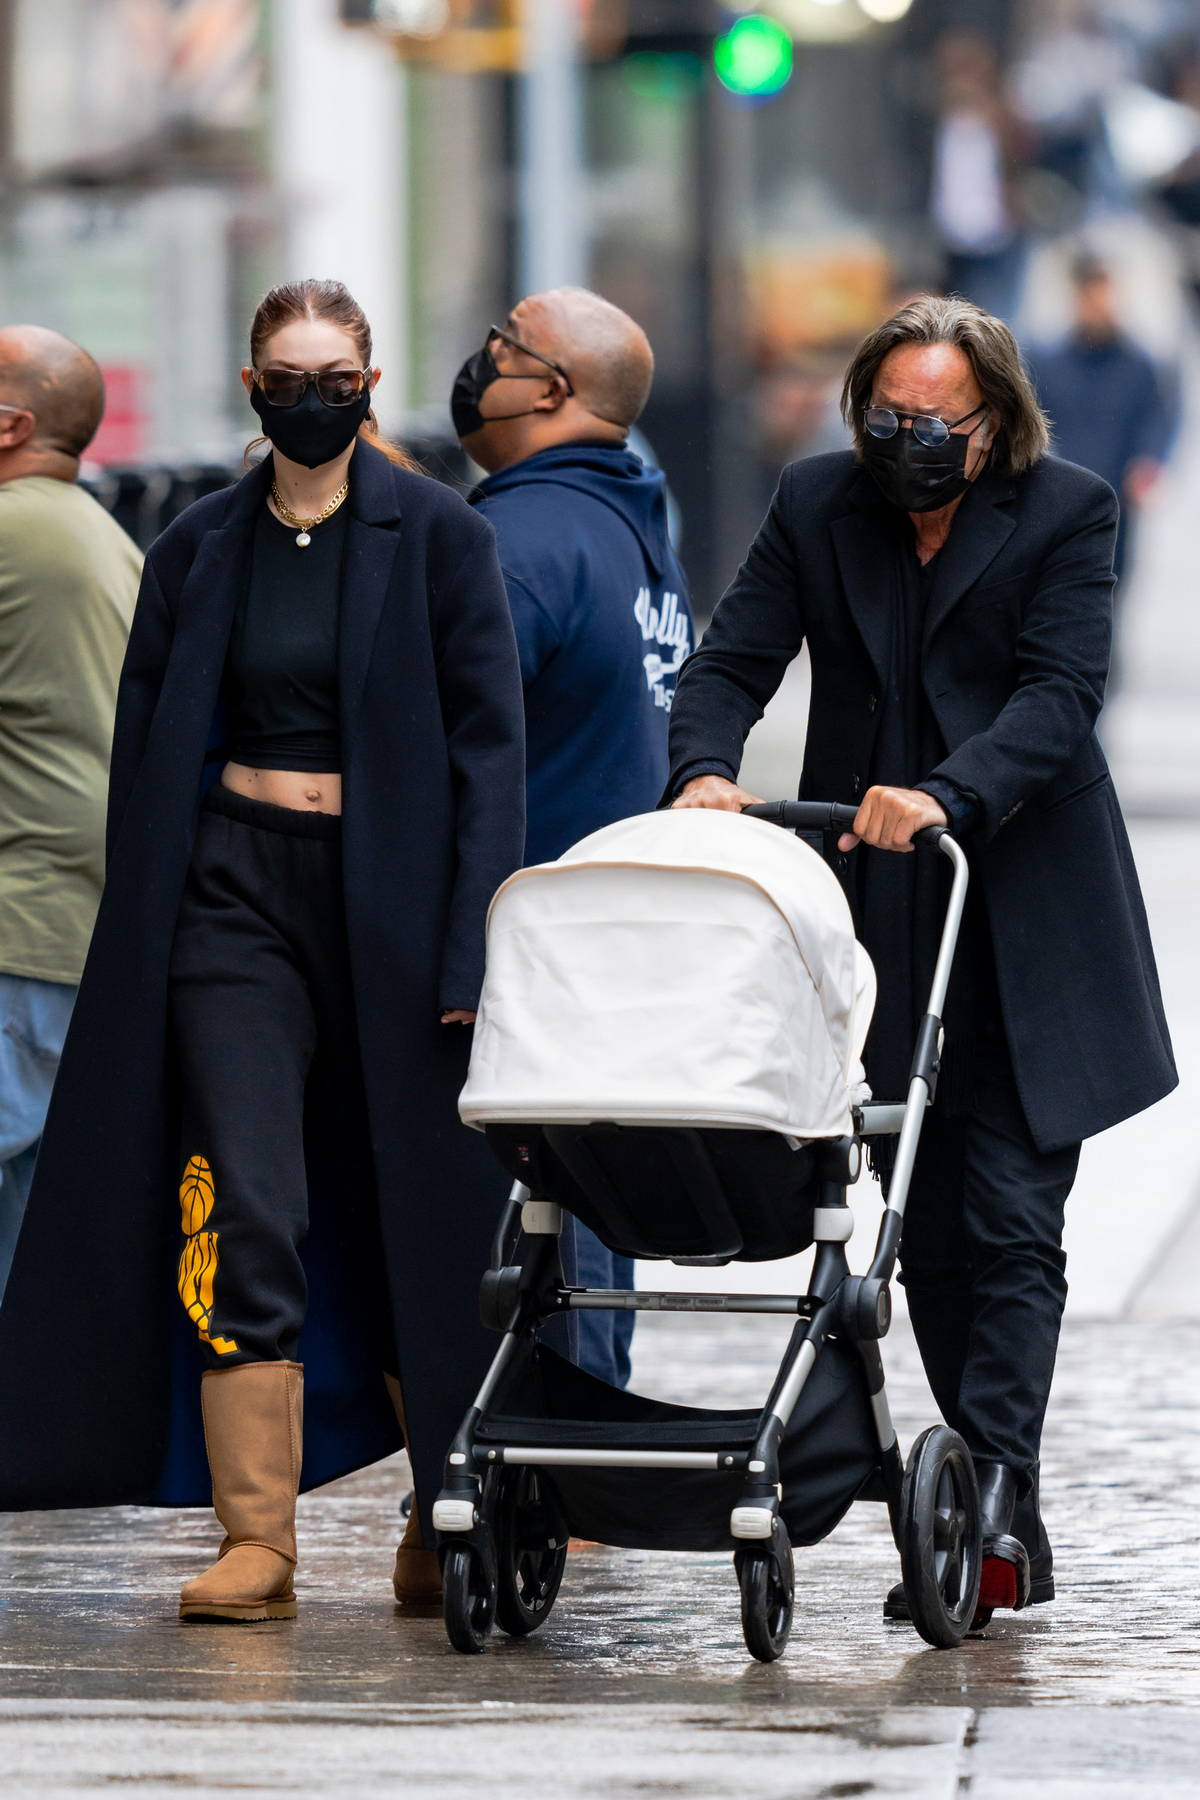 Bella and Gigi Hadid joined by their father Mohamed Hadid for a stroll to lunch at Mercer Kitchen in New York City